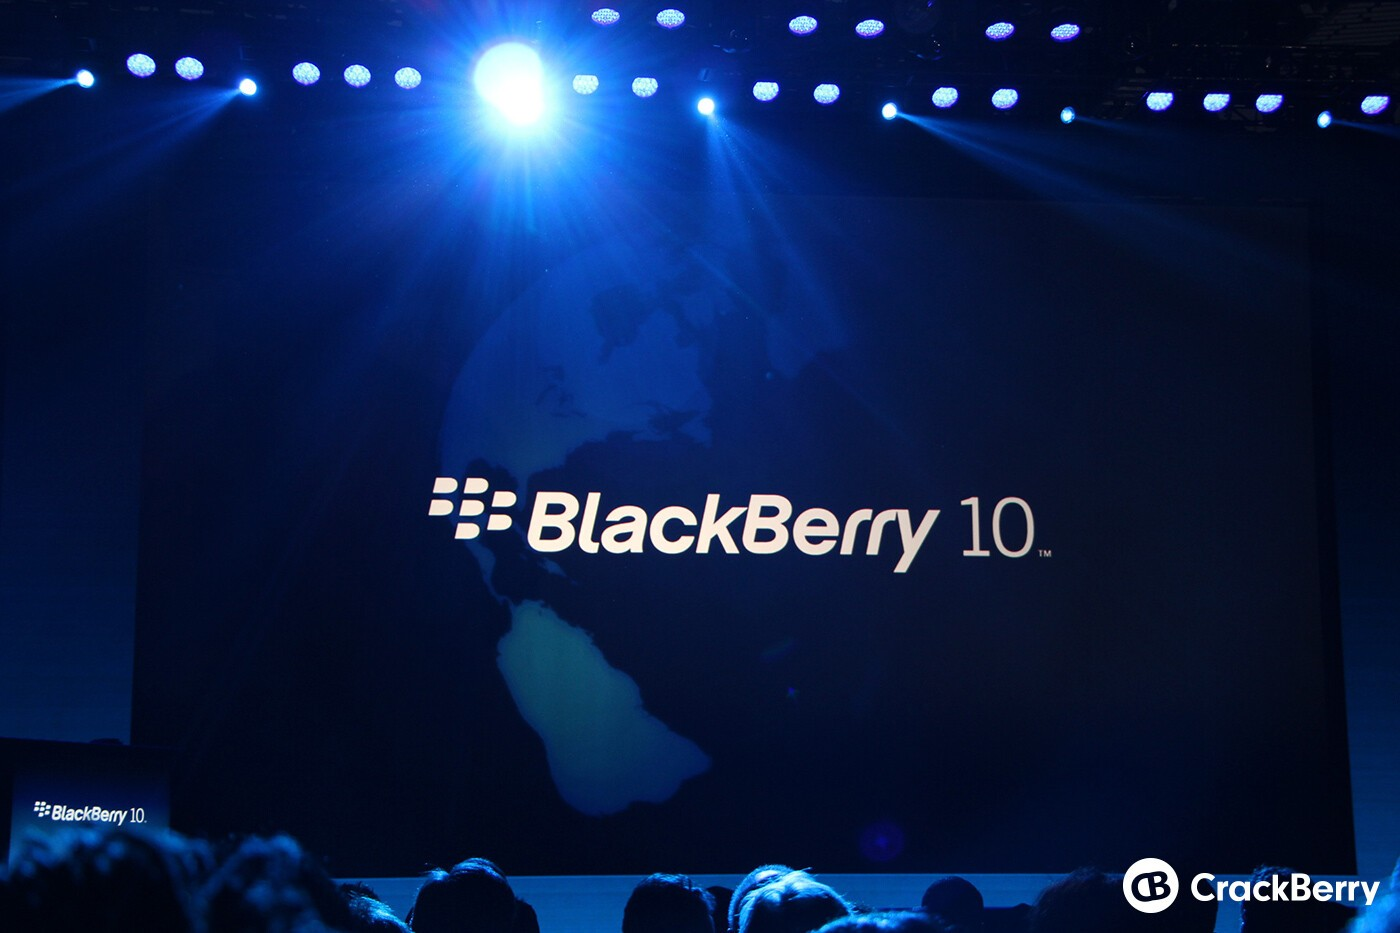 BlackBerry Q1 Fiscal 2016 Earnings Call Live Blog!